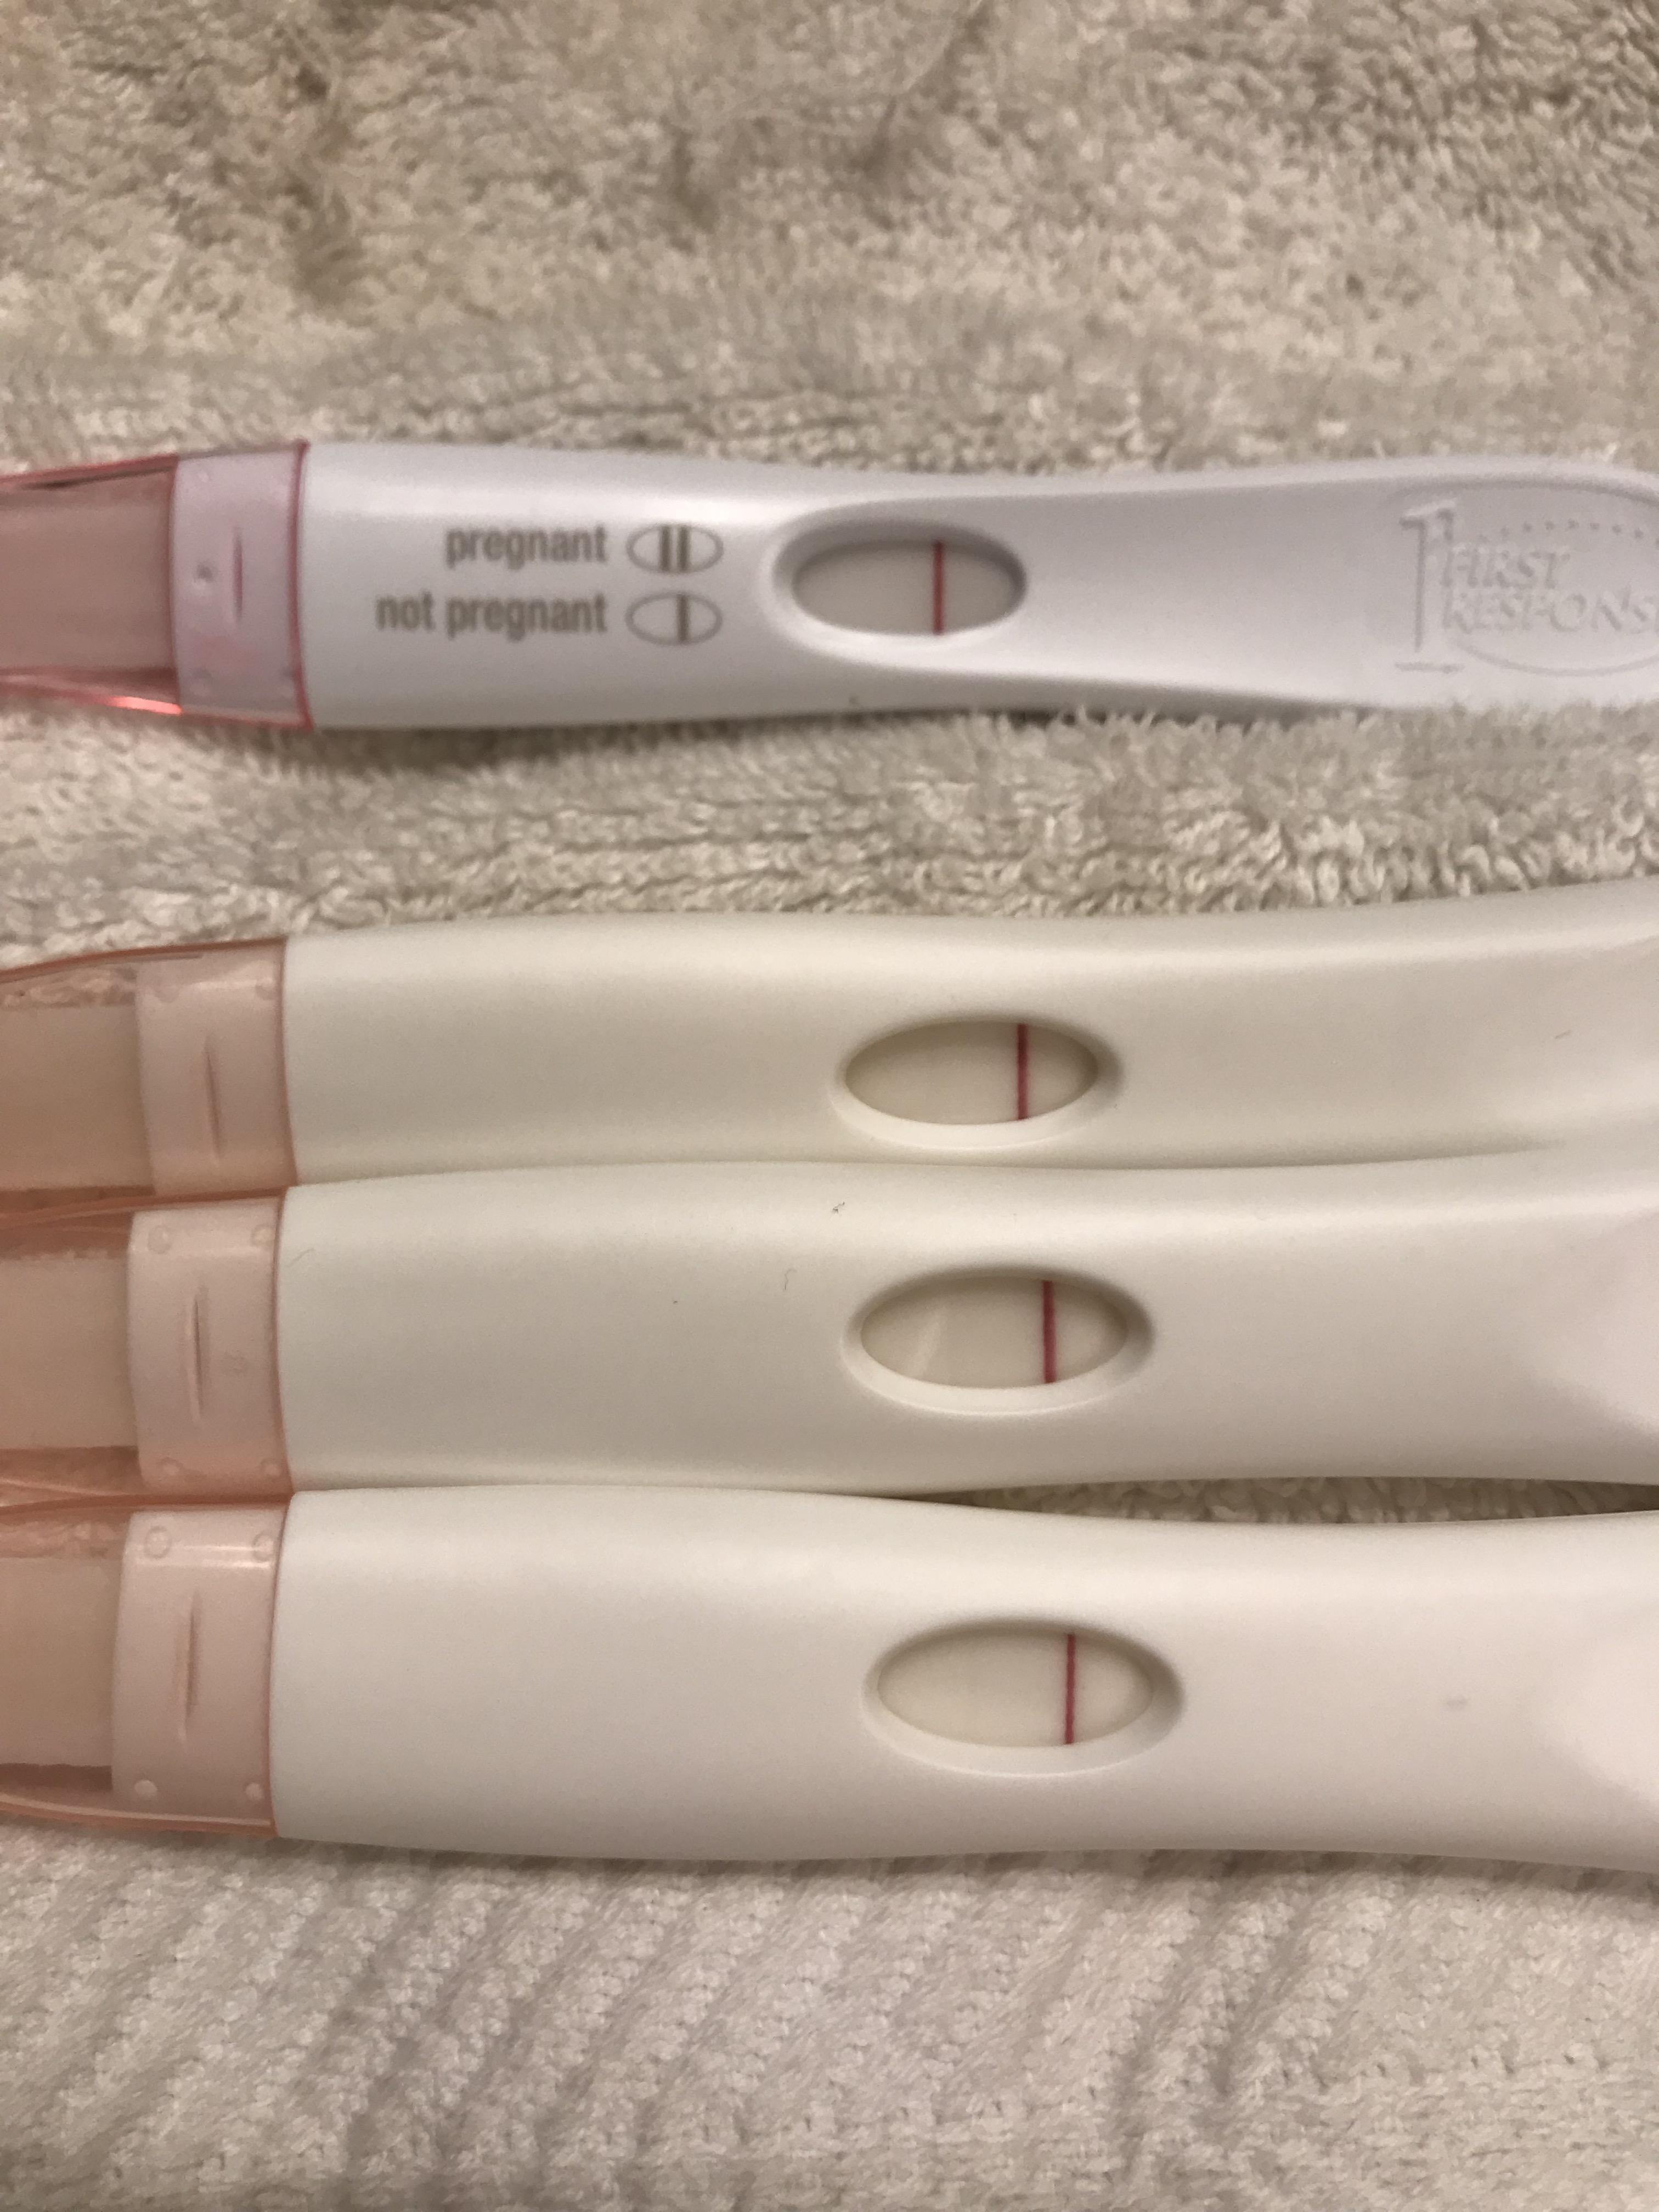 Walgreens Pink Dye Pregnancy Test : walgreens, pregnancy, 8-9dpo?,, Top-FRER,, Bottom, 3-Walgreens, Brand, FRER., About, Worst, Indents, Ever!, Taken, Minutes, Apart, Because, Thought, Indents?, Those